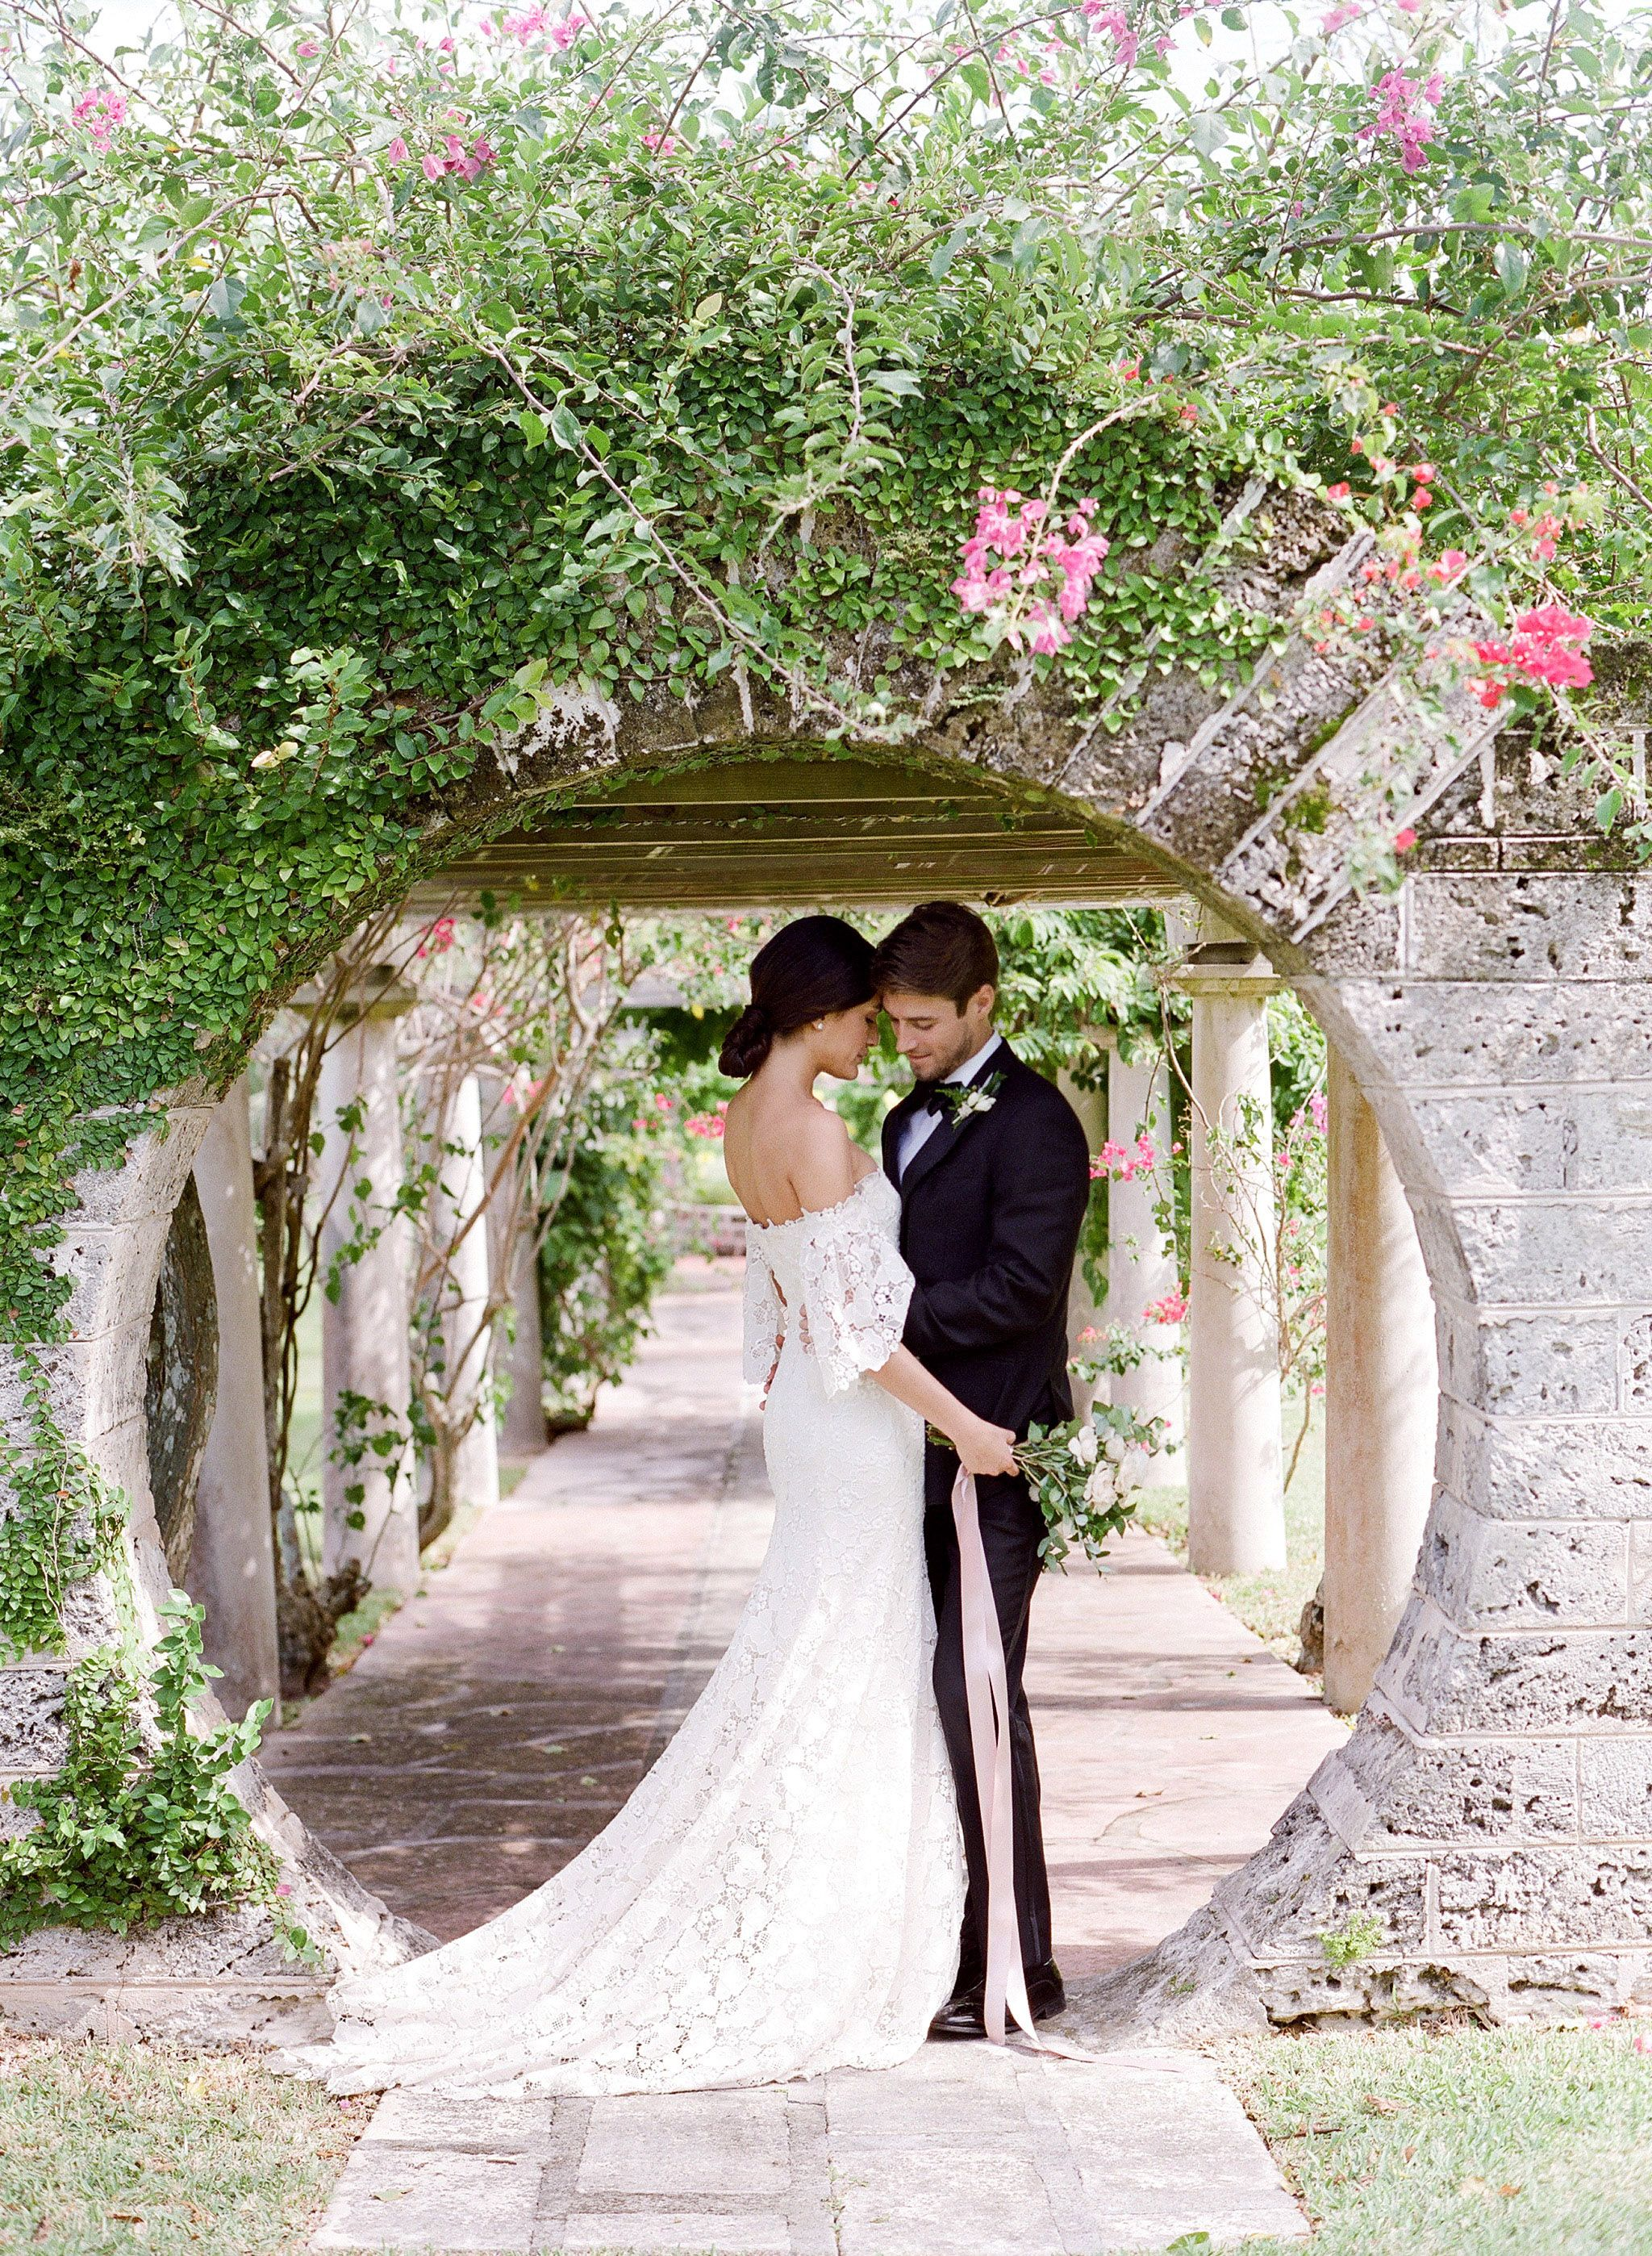 Looks Like We Found The Best Place To Have A Relaxed Carefree Destination Wedding Destination Wedding Dress Wedding Dresses Strapless Wedding Dresses